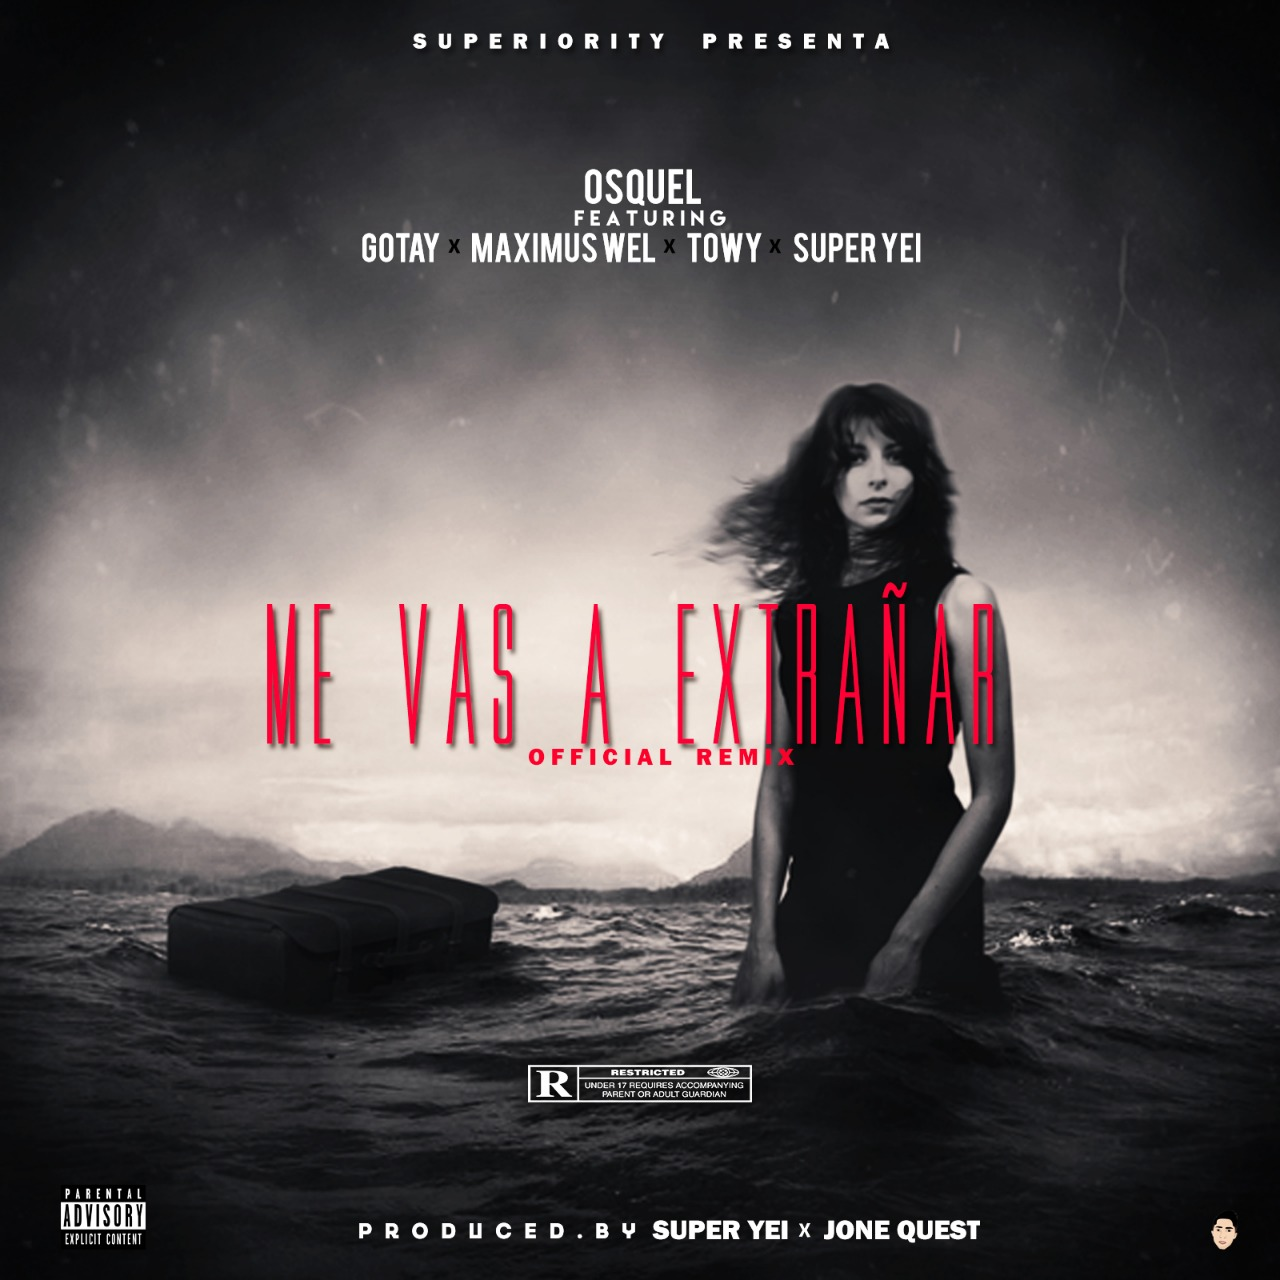 Osquel Ft. Gotay, Towy, Maximus Wel Y Super Yei – Me Vas A Extrañar (Official Remix)